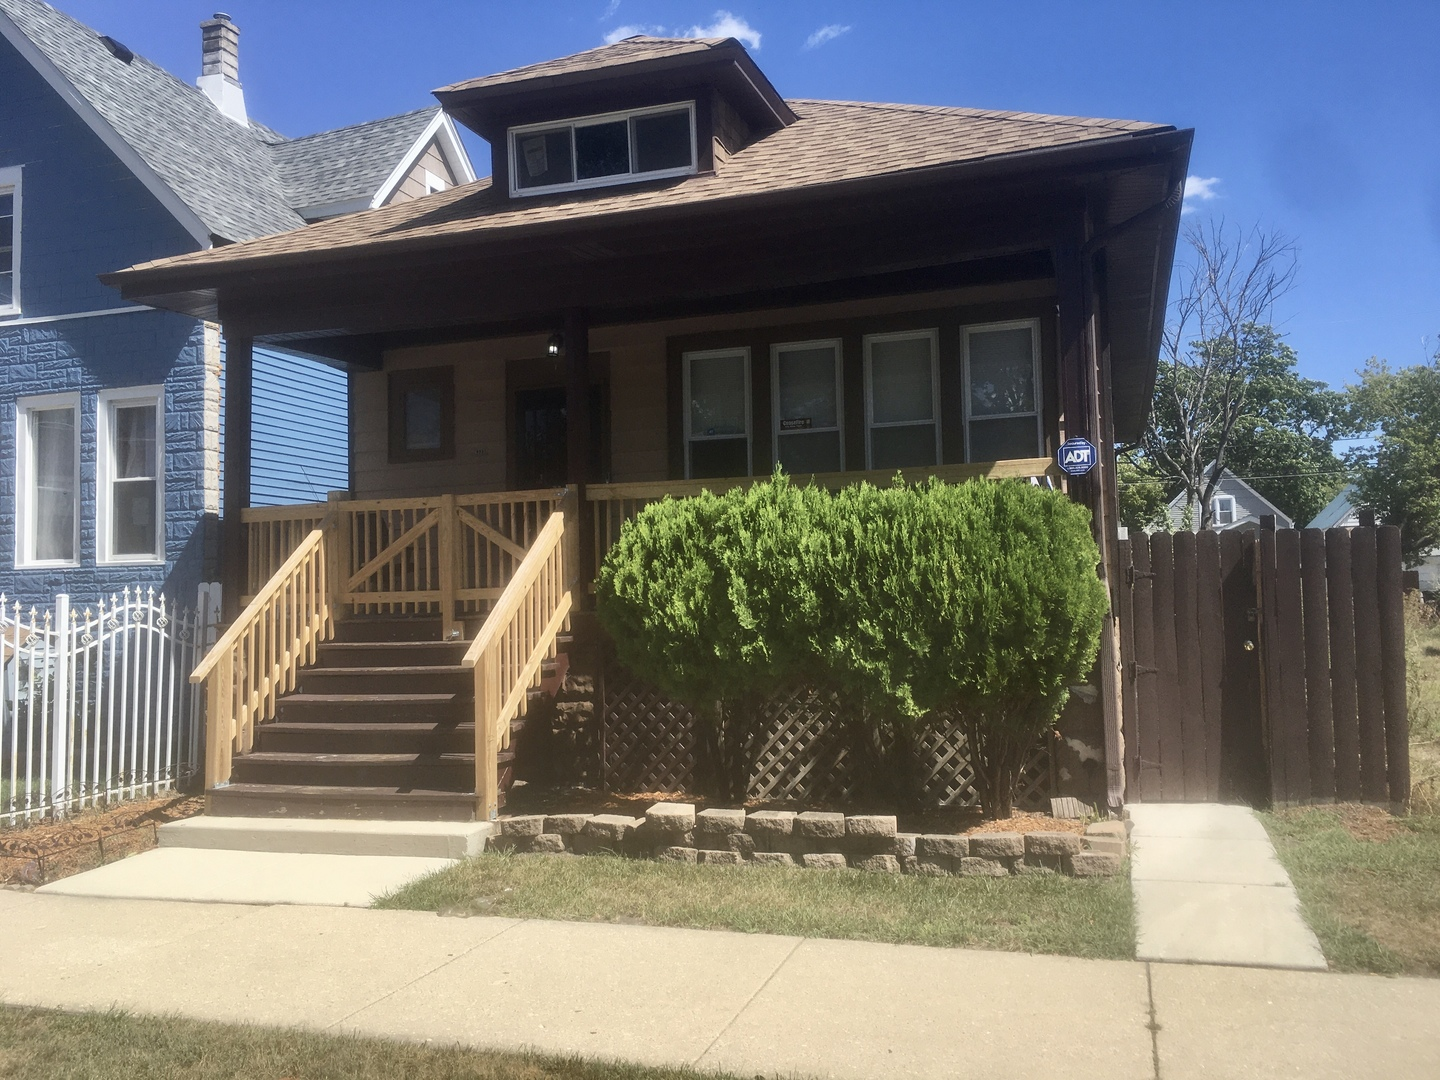 Photo of 6323 Fairfield Chicago IL 60629